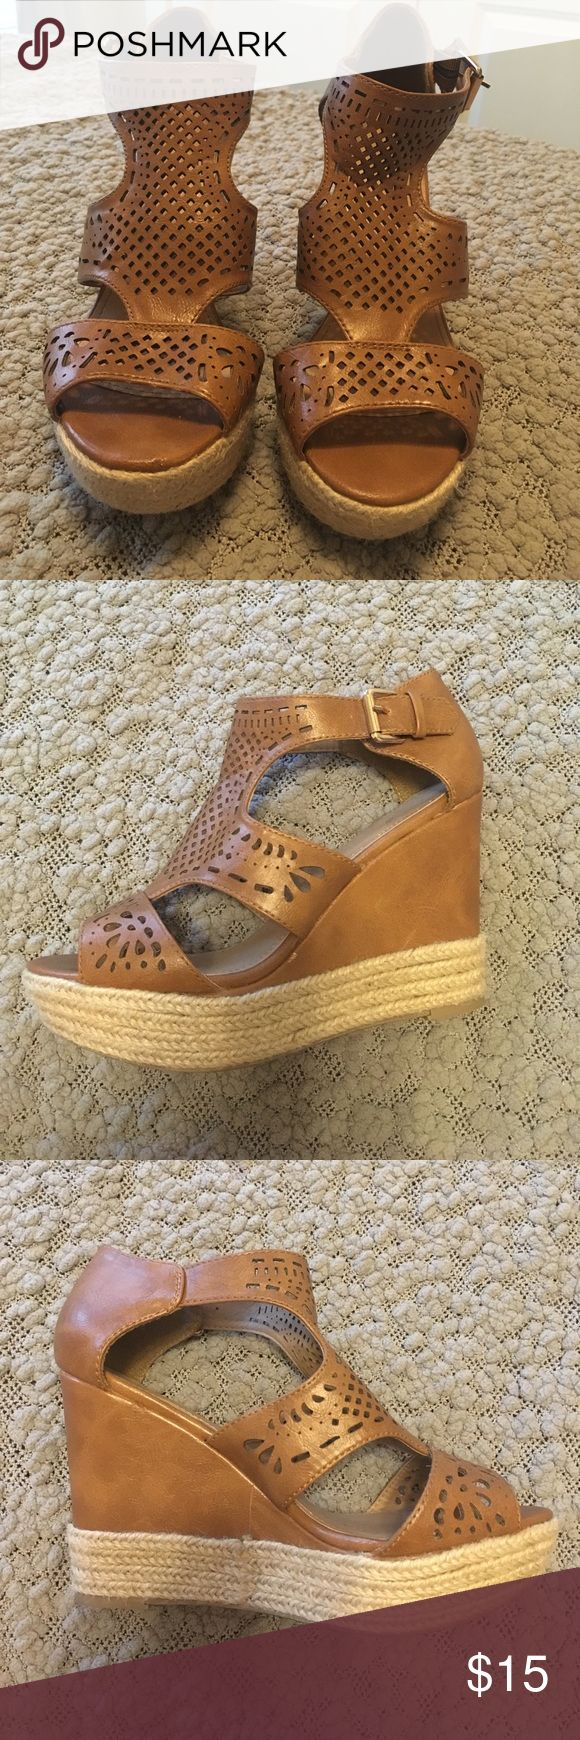 Wedges Tan wedges Shoes Wedges